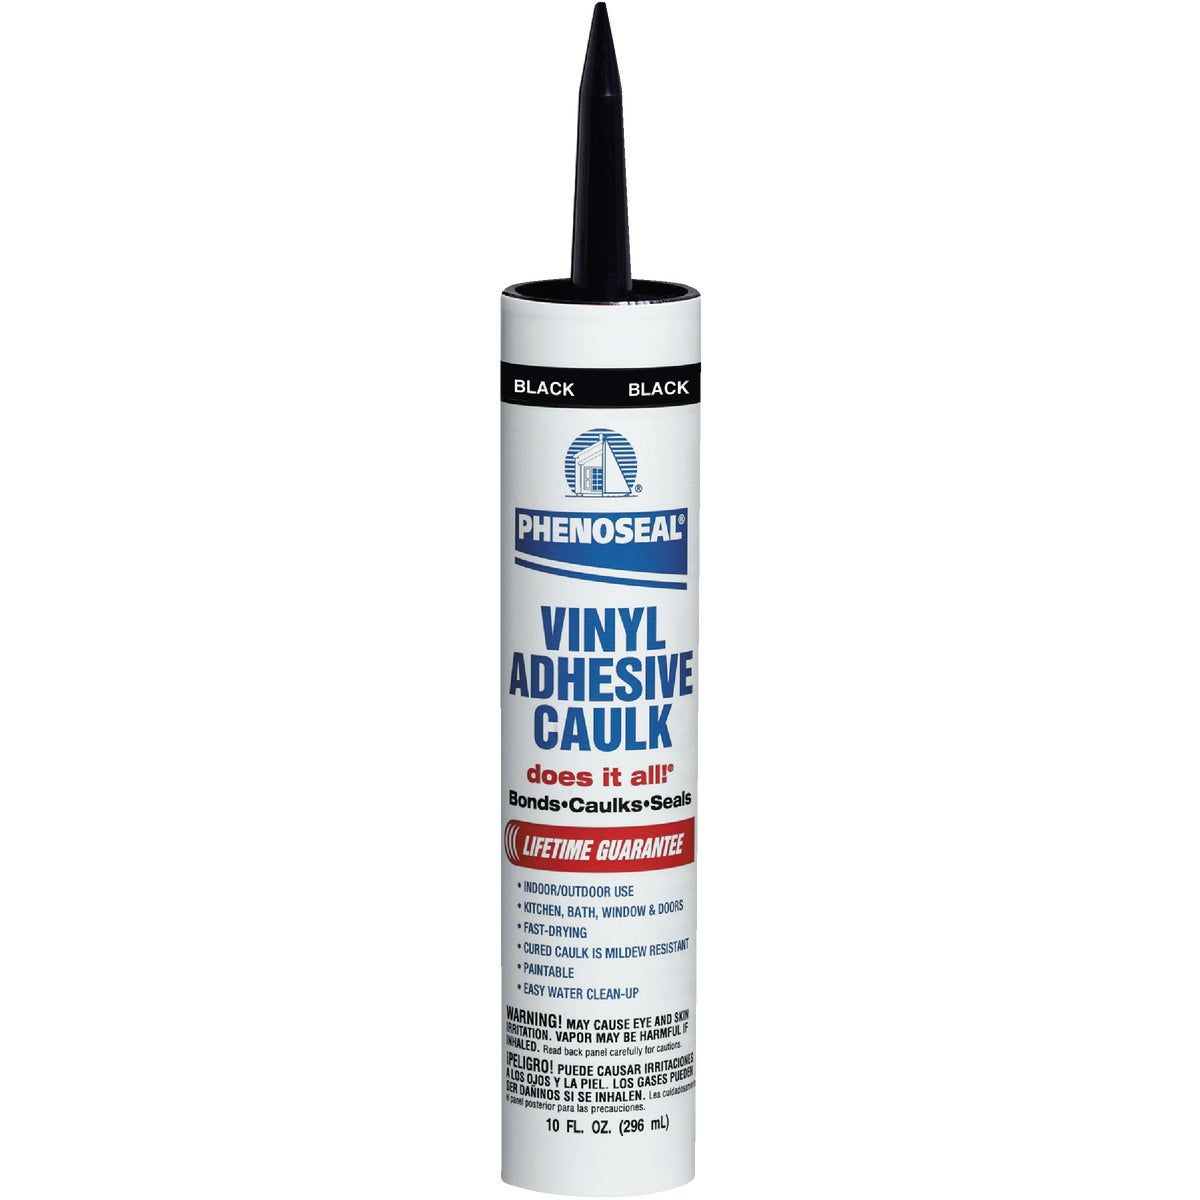 BLACK ADHESIVE CAULK - 06102 by Dap Inc